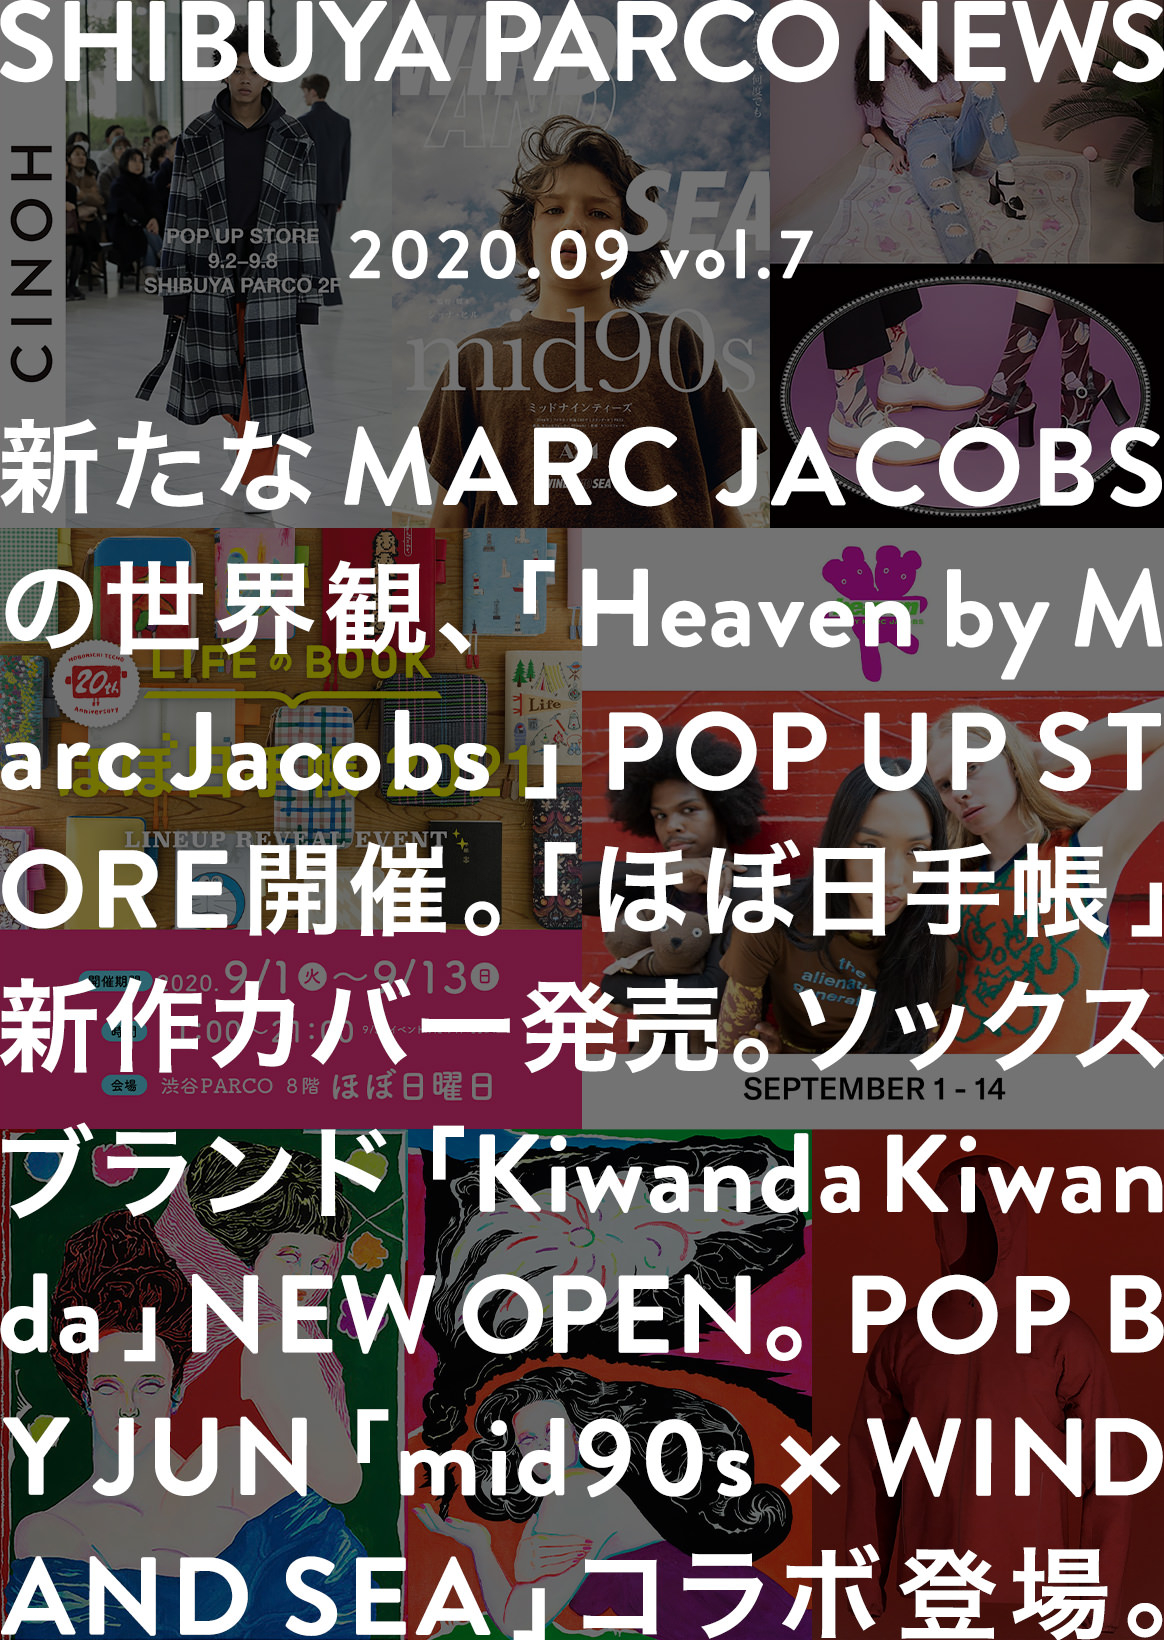 SHIBUYA PARCO NEWS-2020.9-vol.7